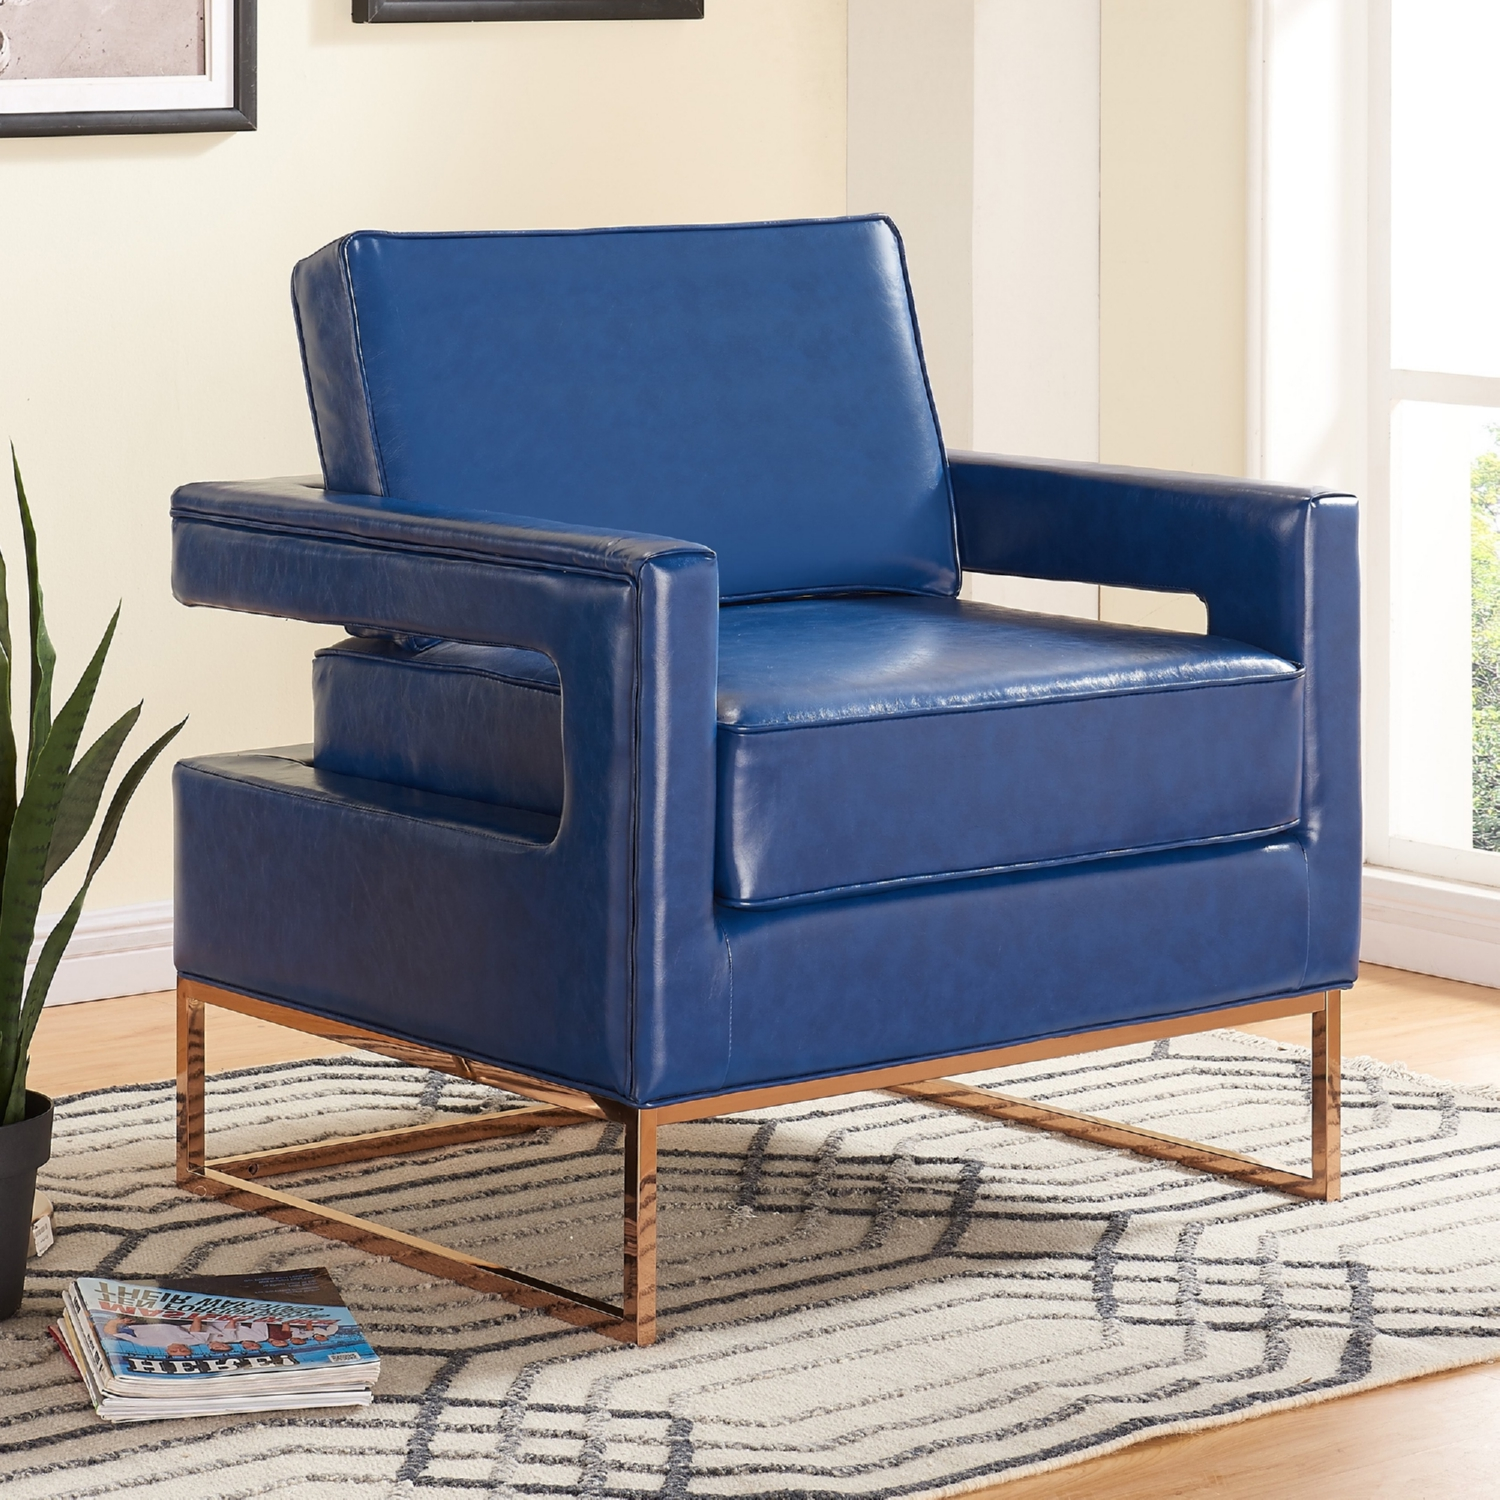 Meridian Furniture 512Navy Amelia Navy Leather Accent Chair on